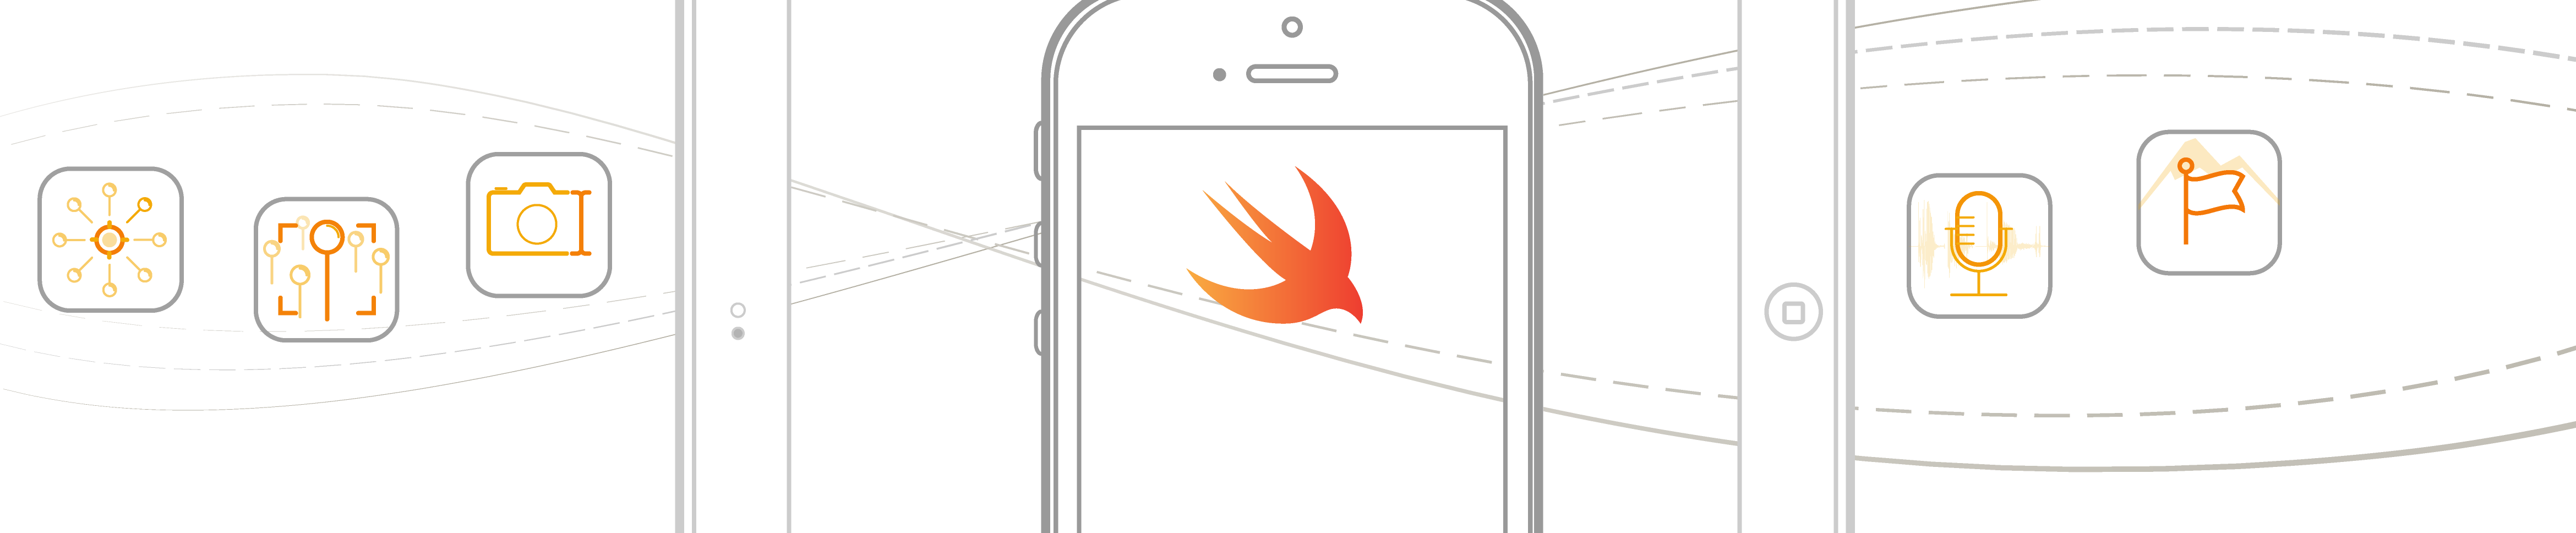 Intro to iOS App Development with Swift